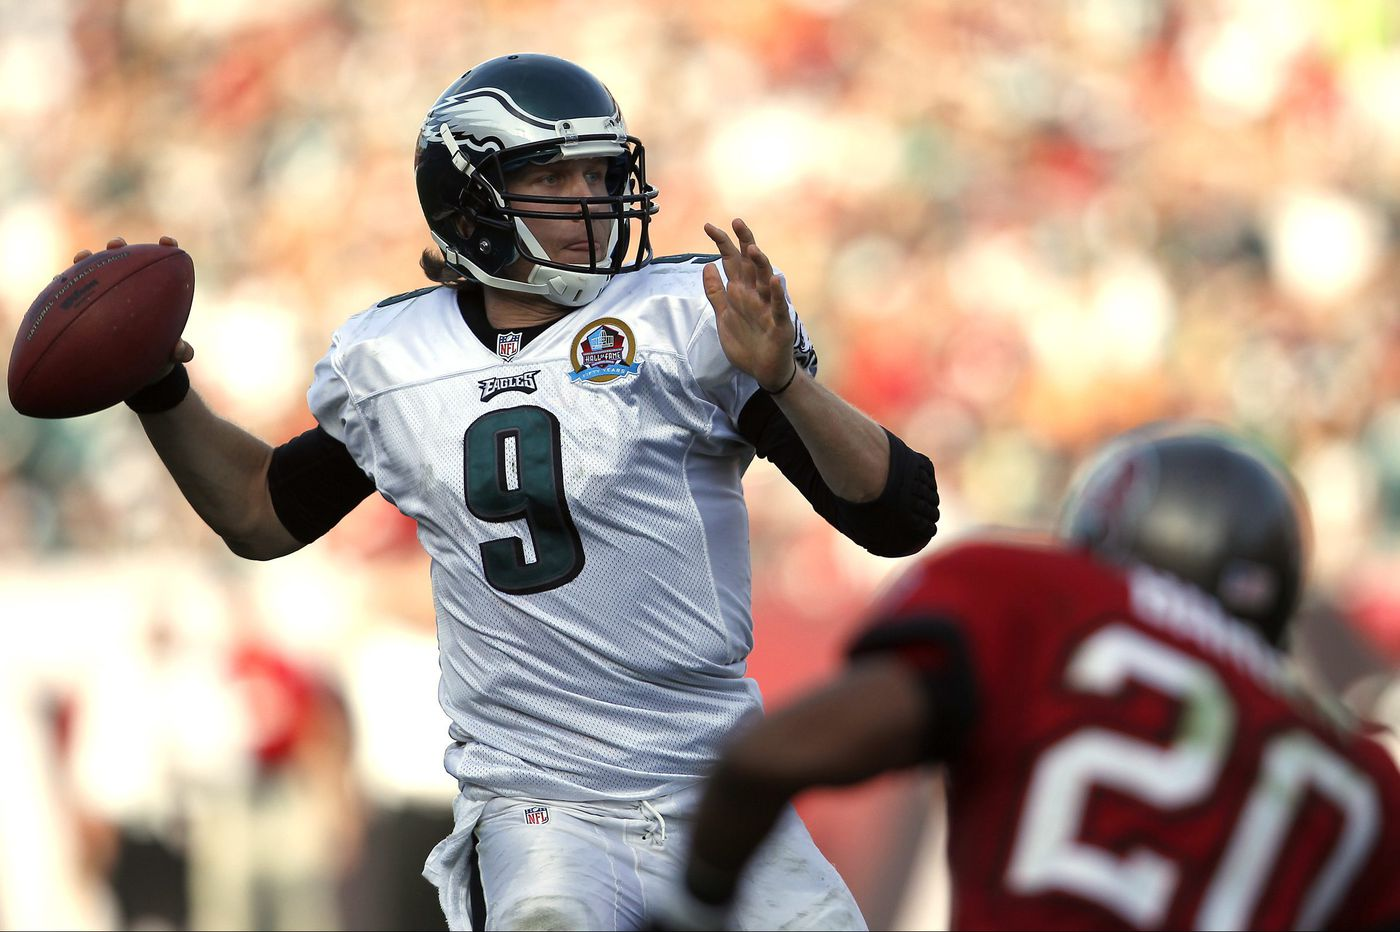 Eagles QB Nick Foles called his own shot long before 'Philly Special': The story behind 'Sidewinder'